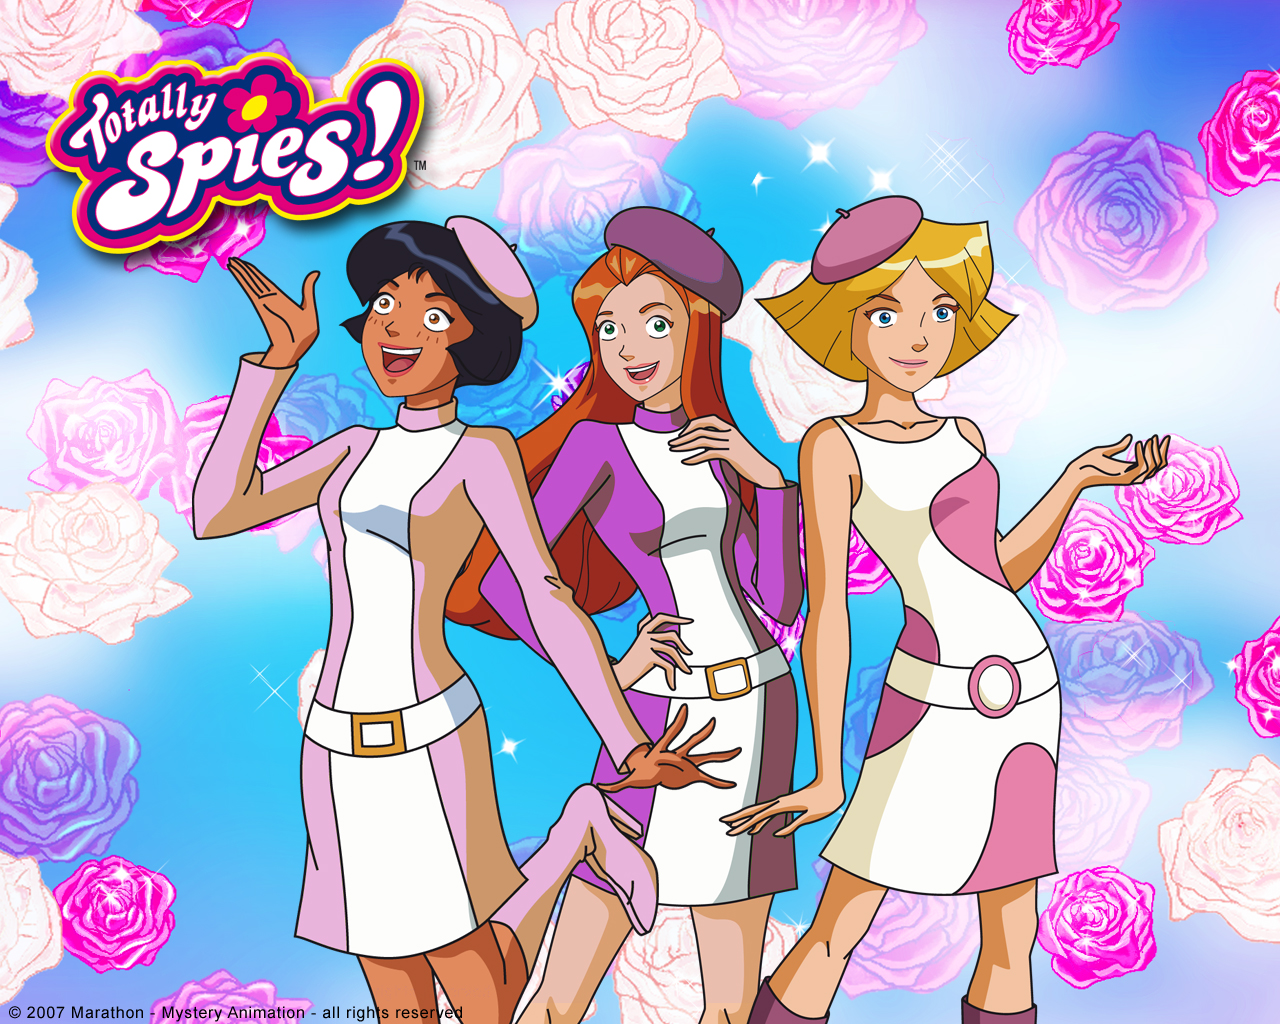 totally spies photo - photo #1